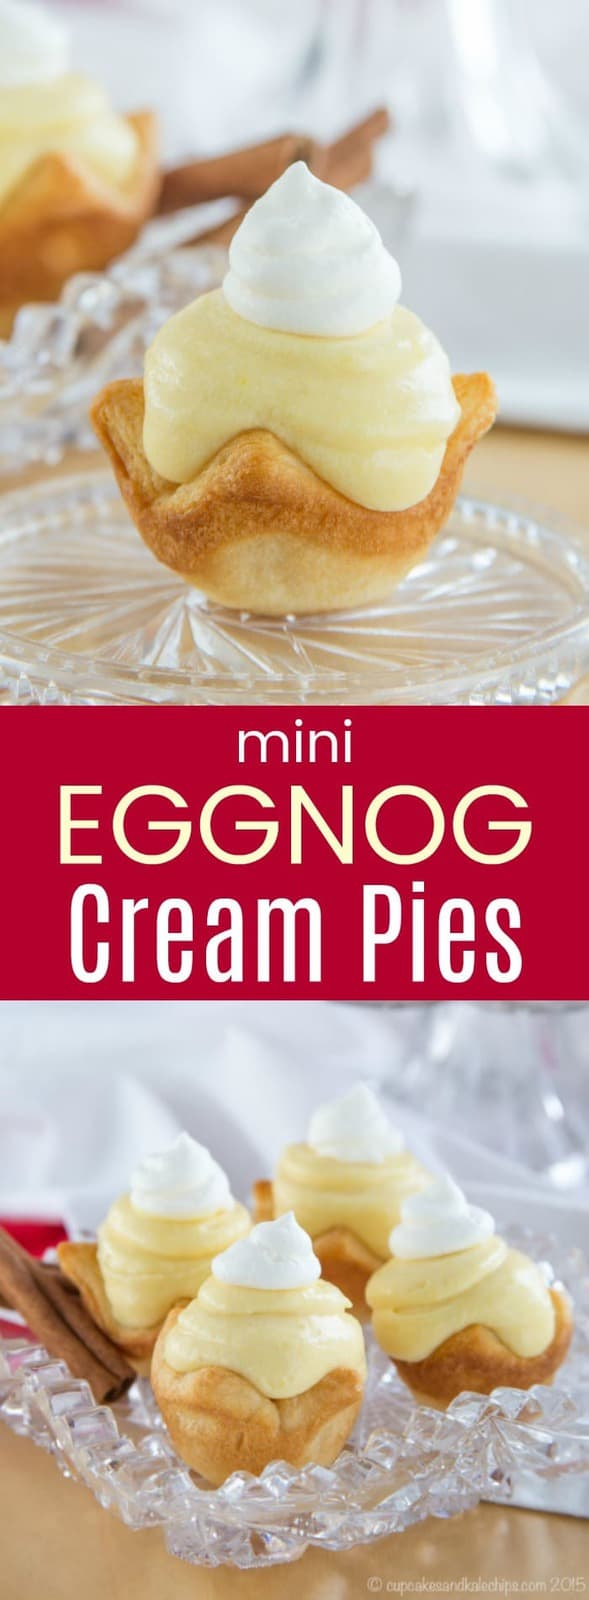 Mini Eggnog Cream Pies - an easy dessert for Christmas with only four ingredients! #eggnog #crescentrolls #christmas #minidesserts